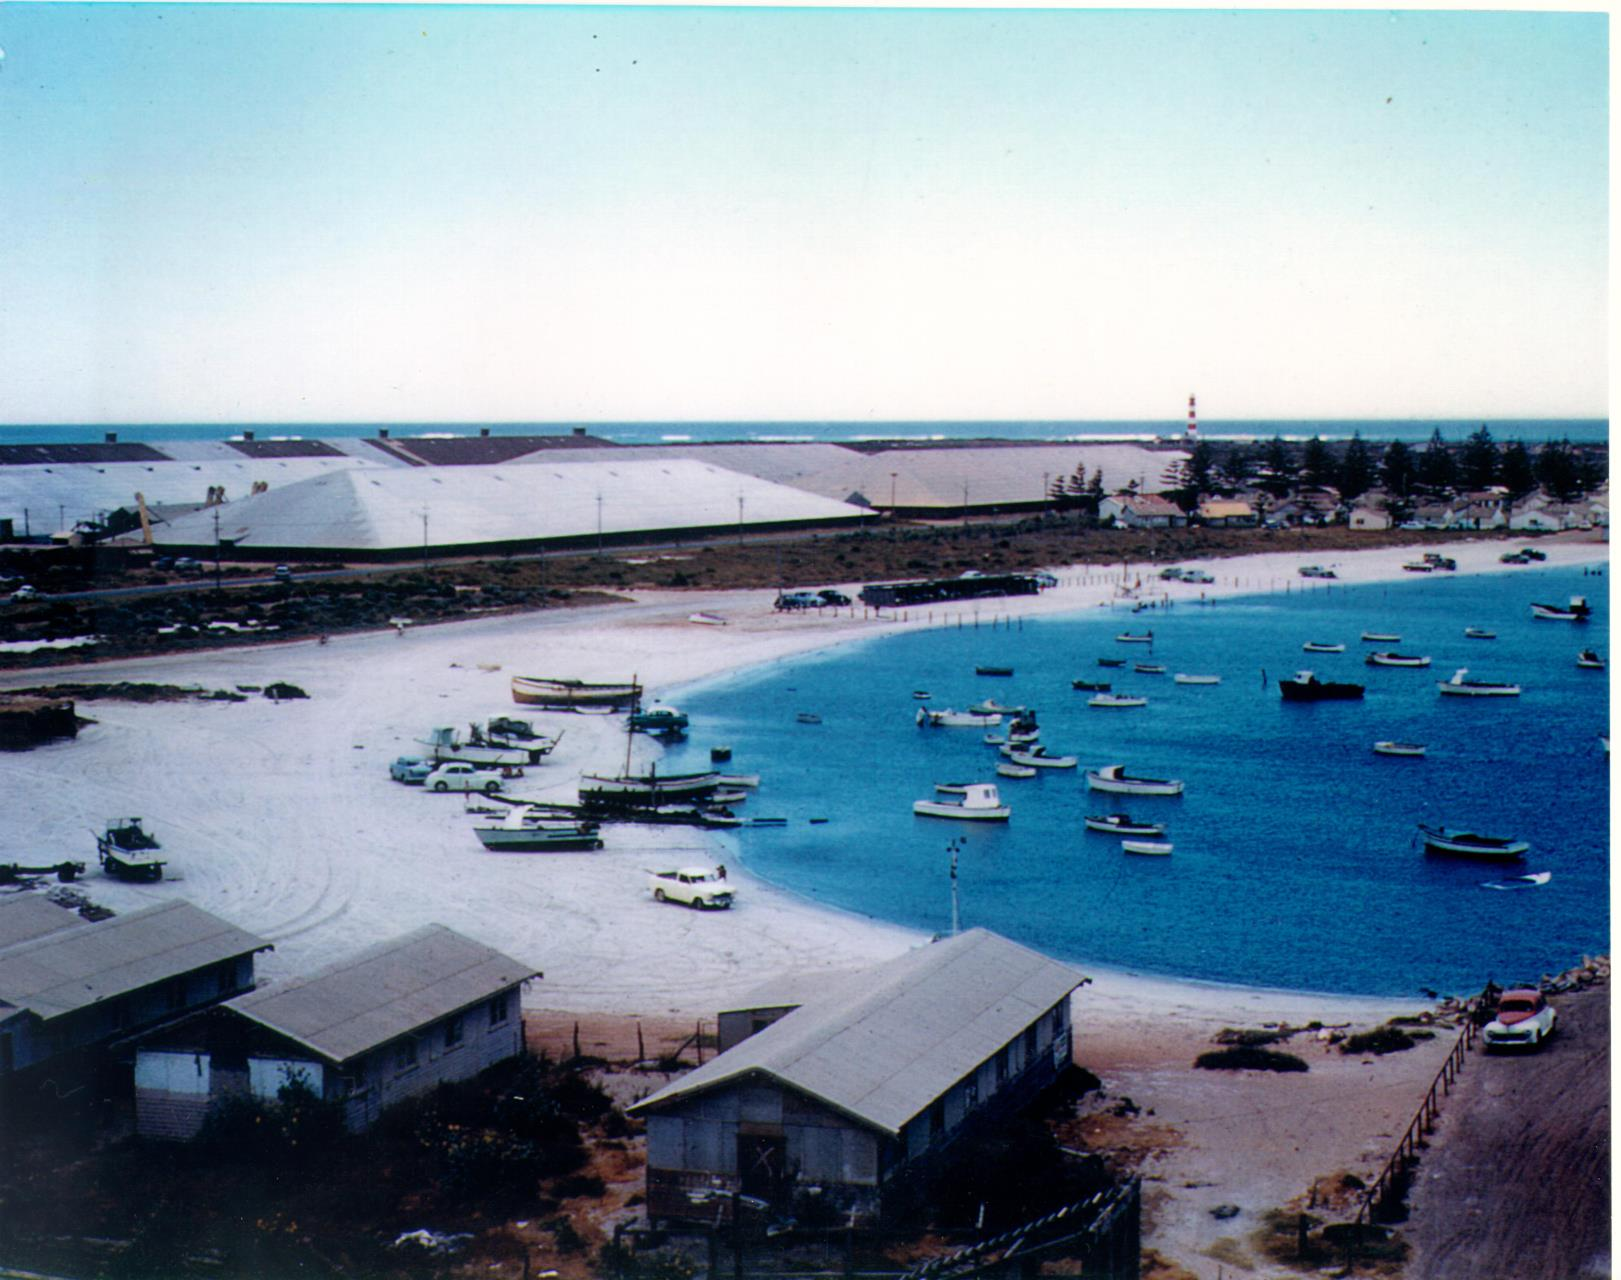 Open Mic - Share Your Memories of Old Geraldton